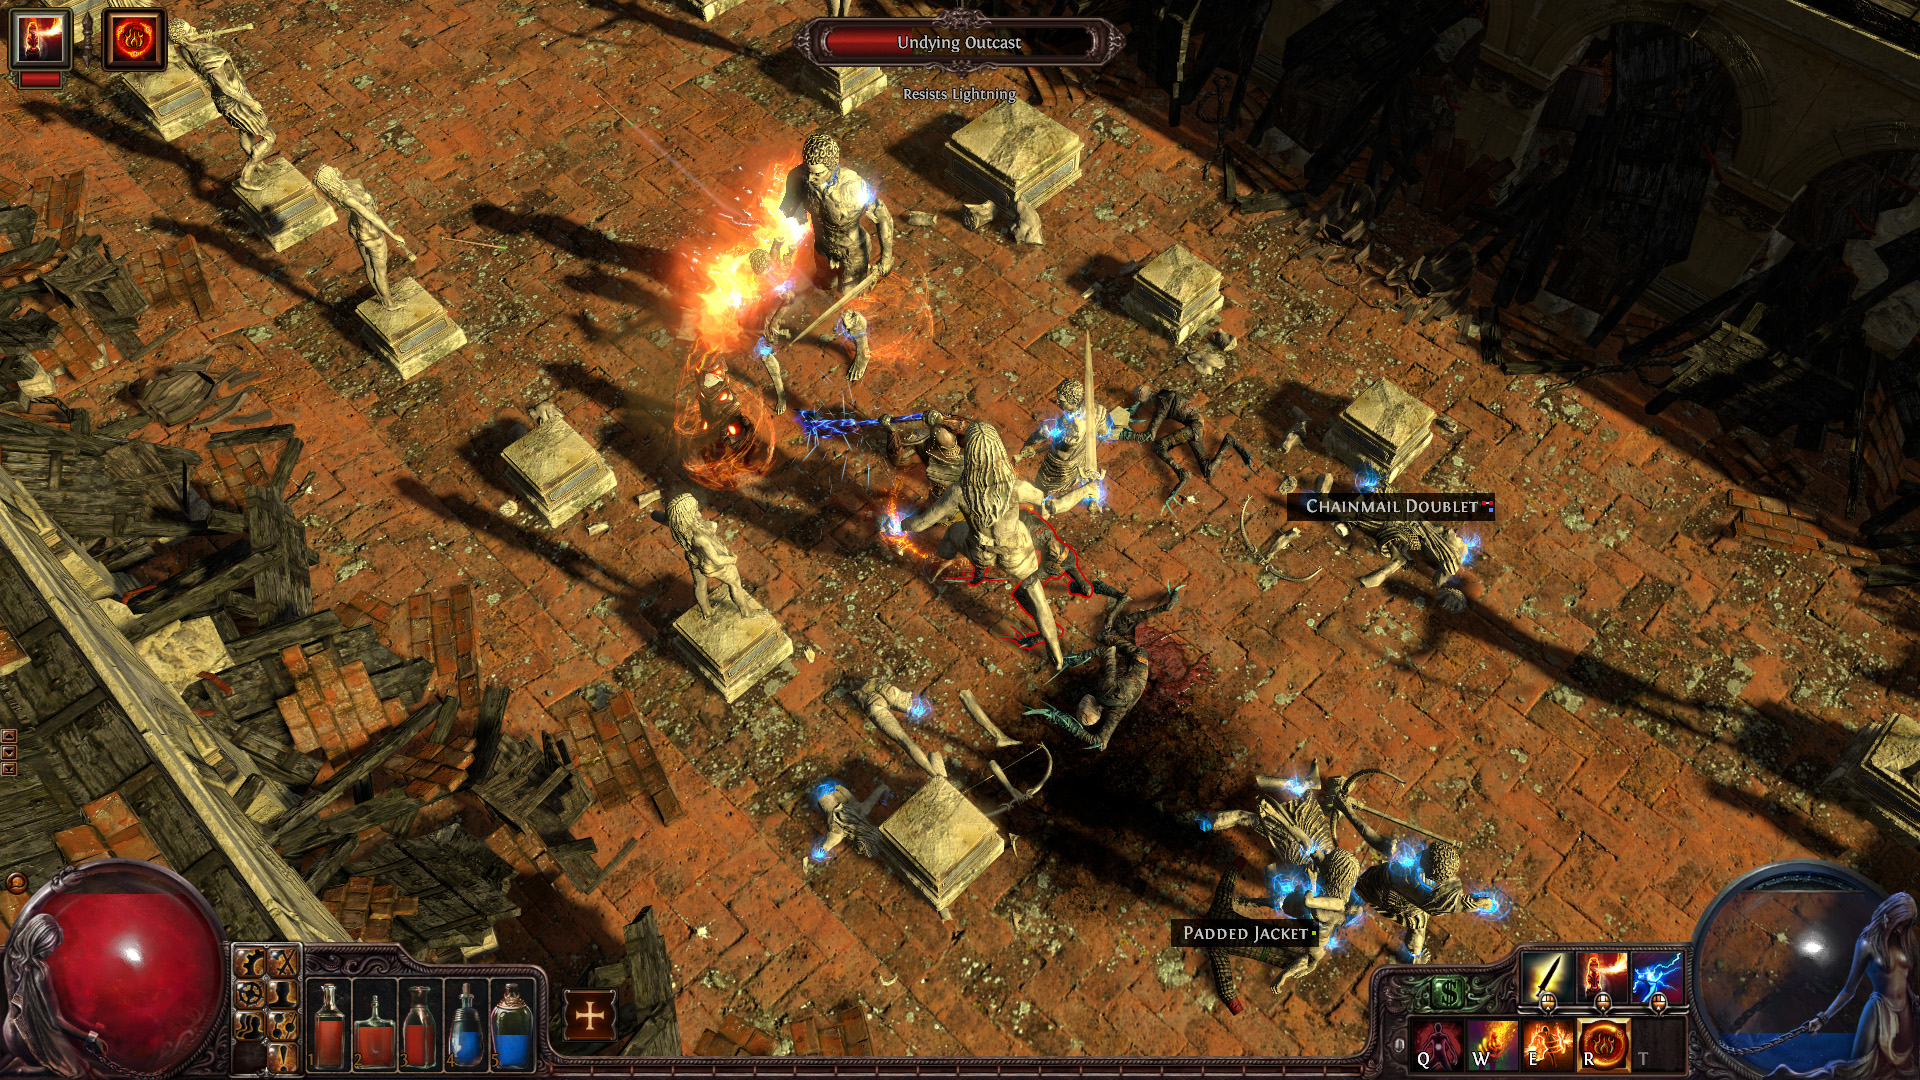 Path of Exile is a Diablo III-like game which builds upon the genre. While  games like Diablo III, Victor Vran: Overkill Edition and Vikings: Wolves of  ...